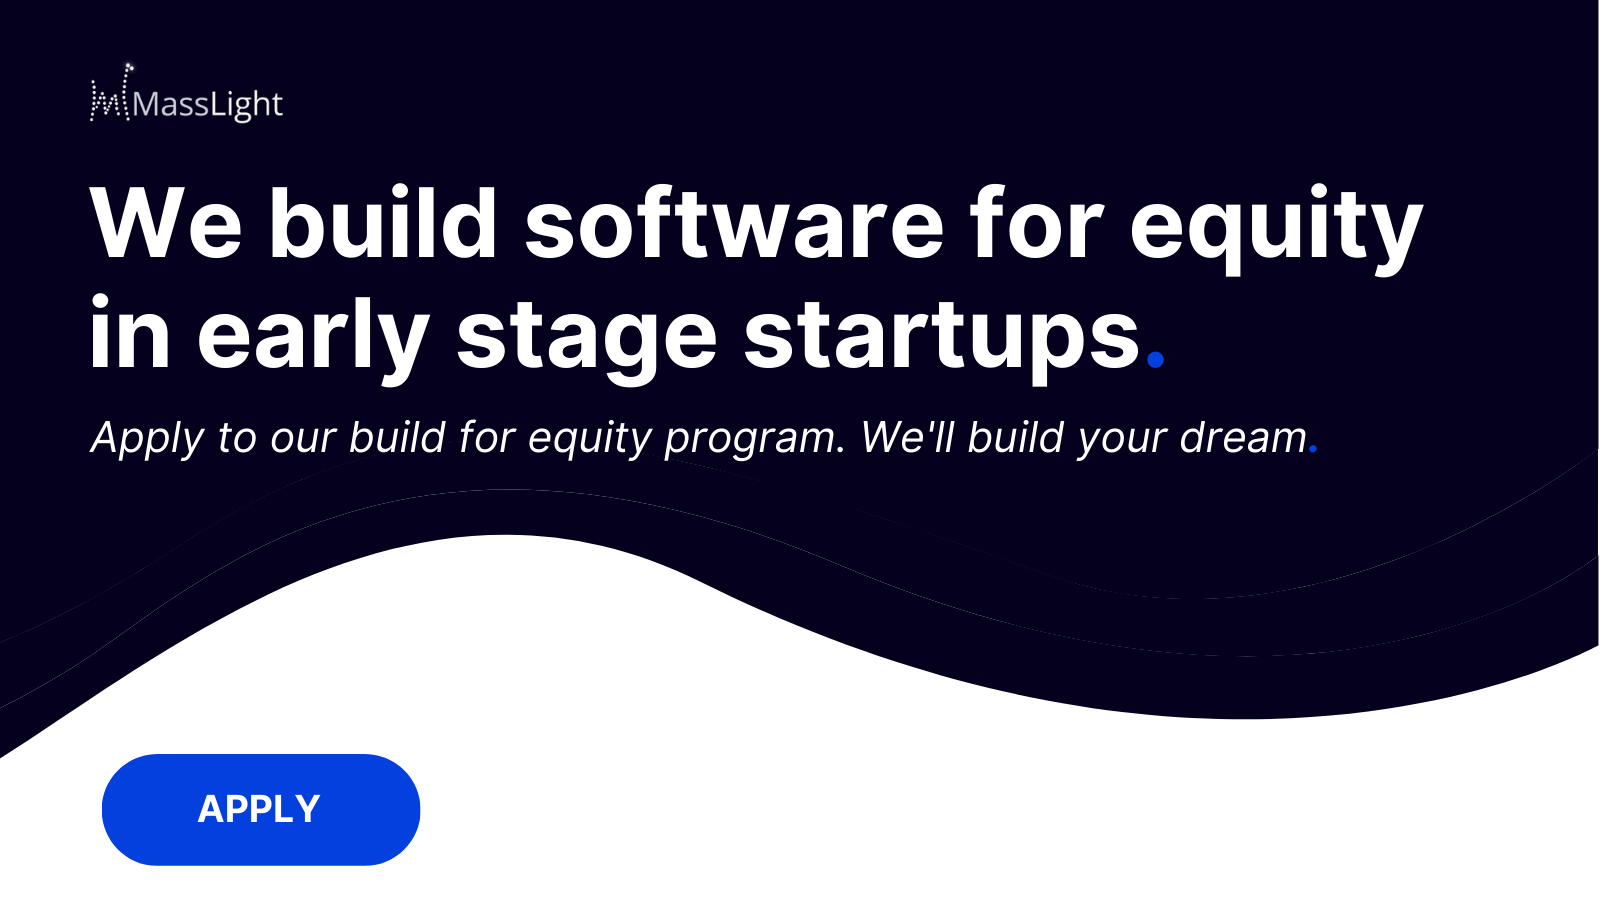 software for equity